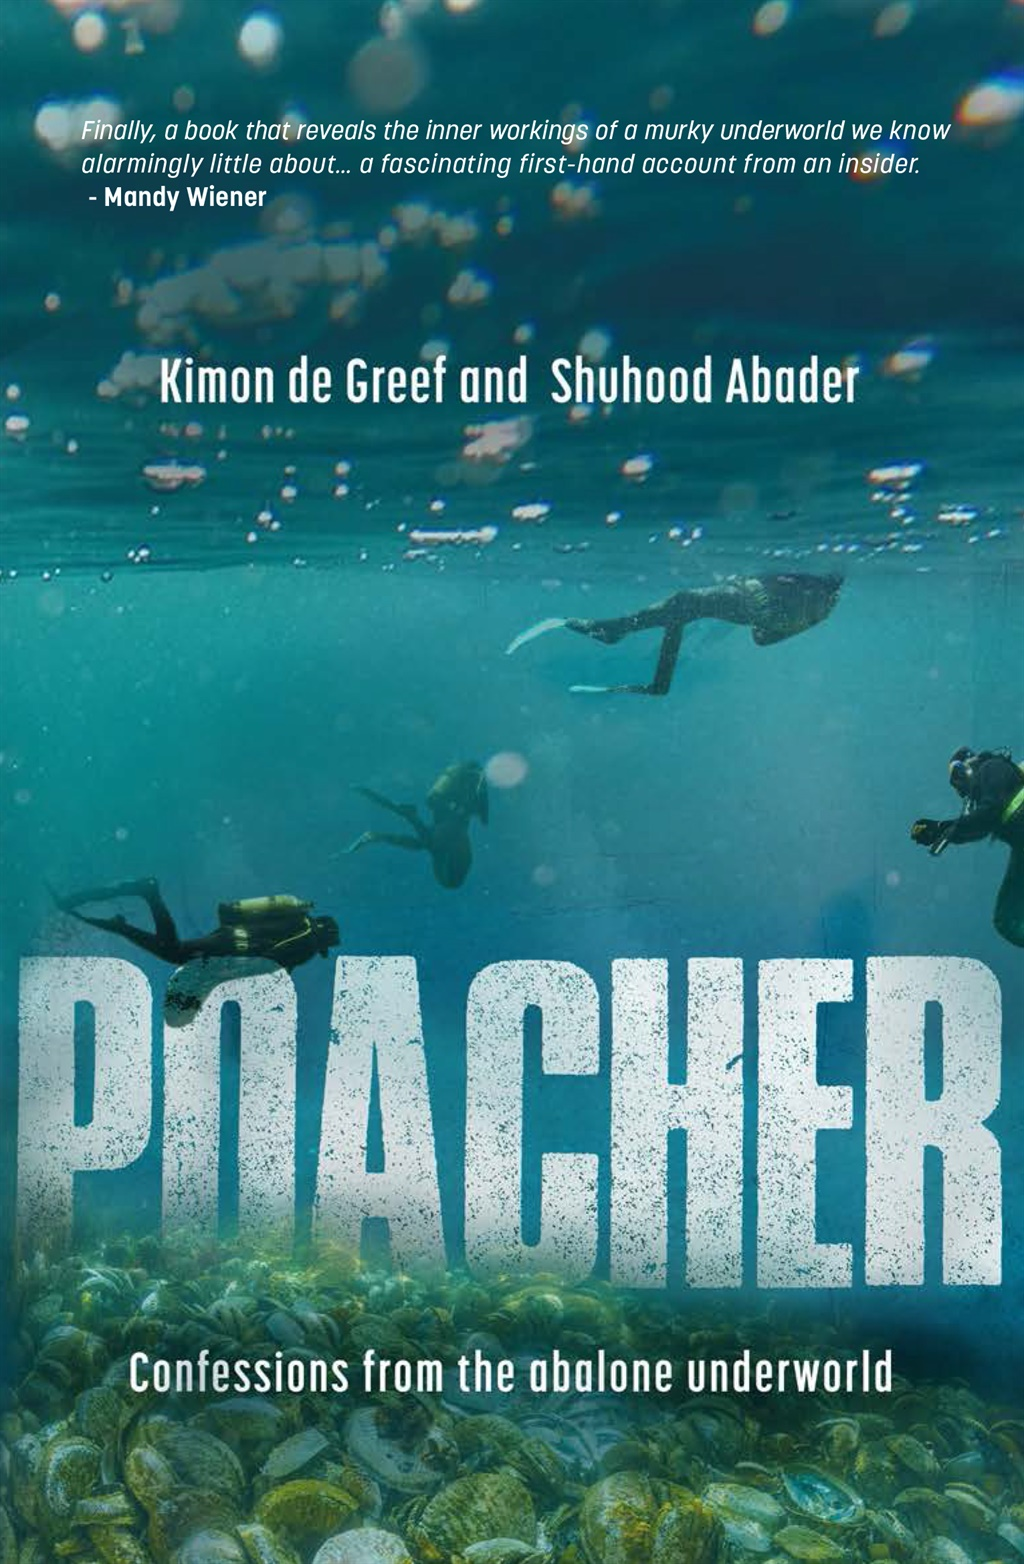 Poacher: Confessions from the abalone underworld by Kimon de Greef and Shuhood Abader published by Kwela Books.